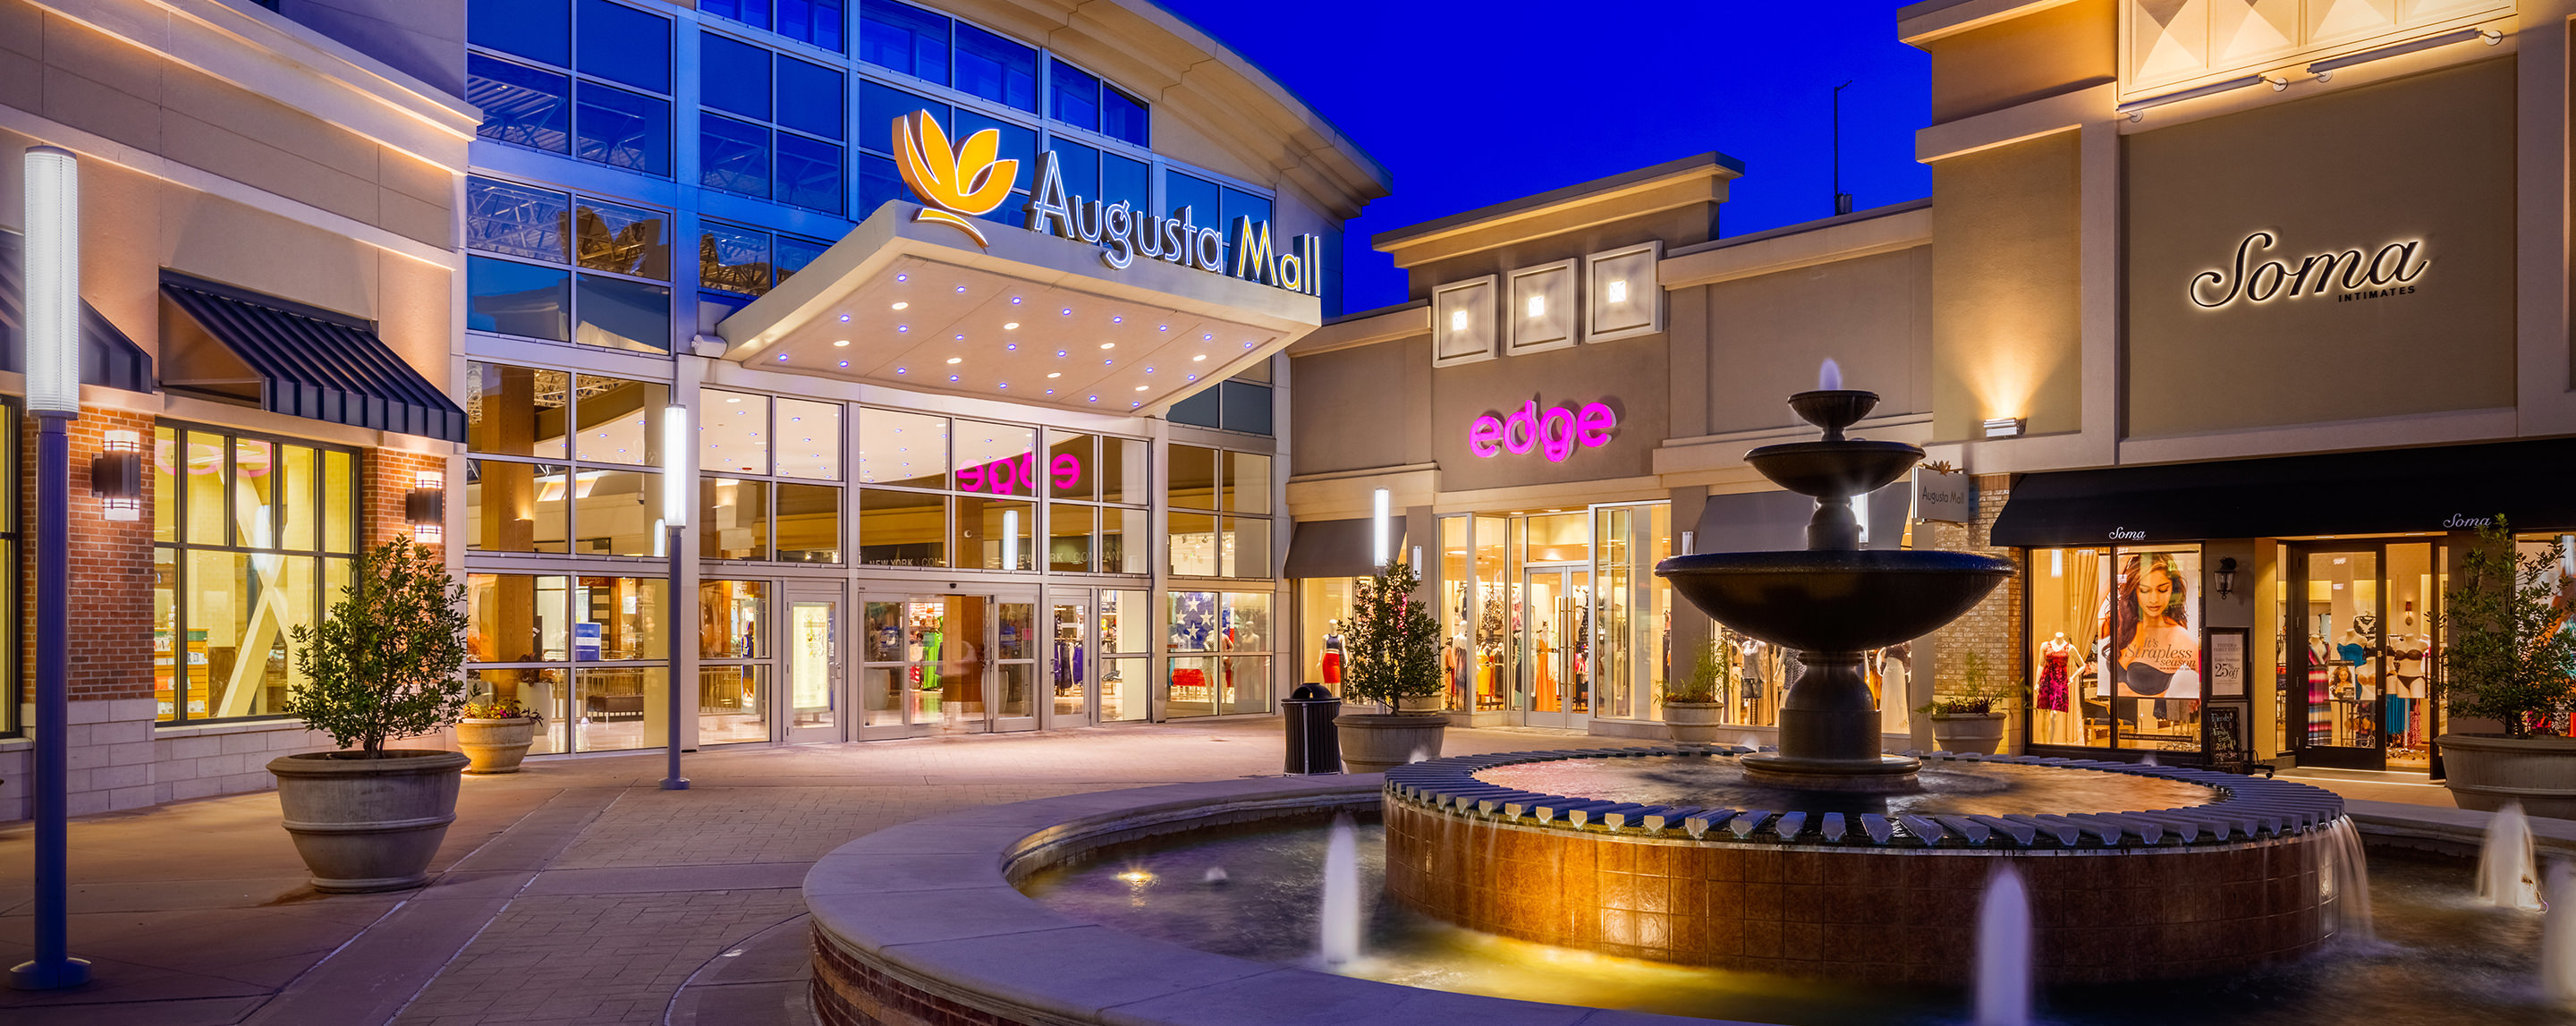 45 Augusta Mall jobs hiring Near Me. Browse Augusta Mall jobs and apply online. Search Augusta Mall to find your next Augusta Mall job in Near Me.